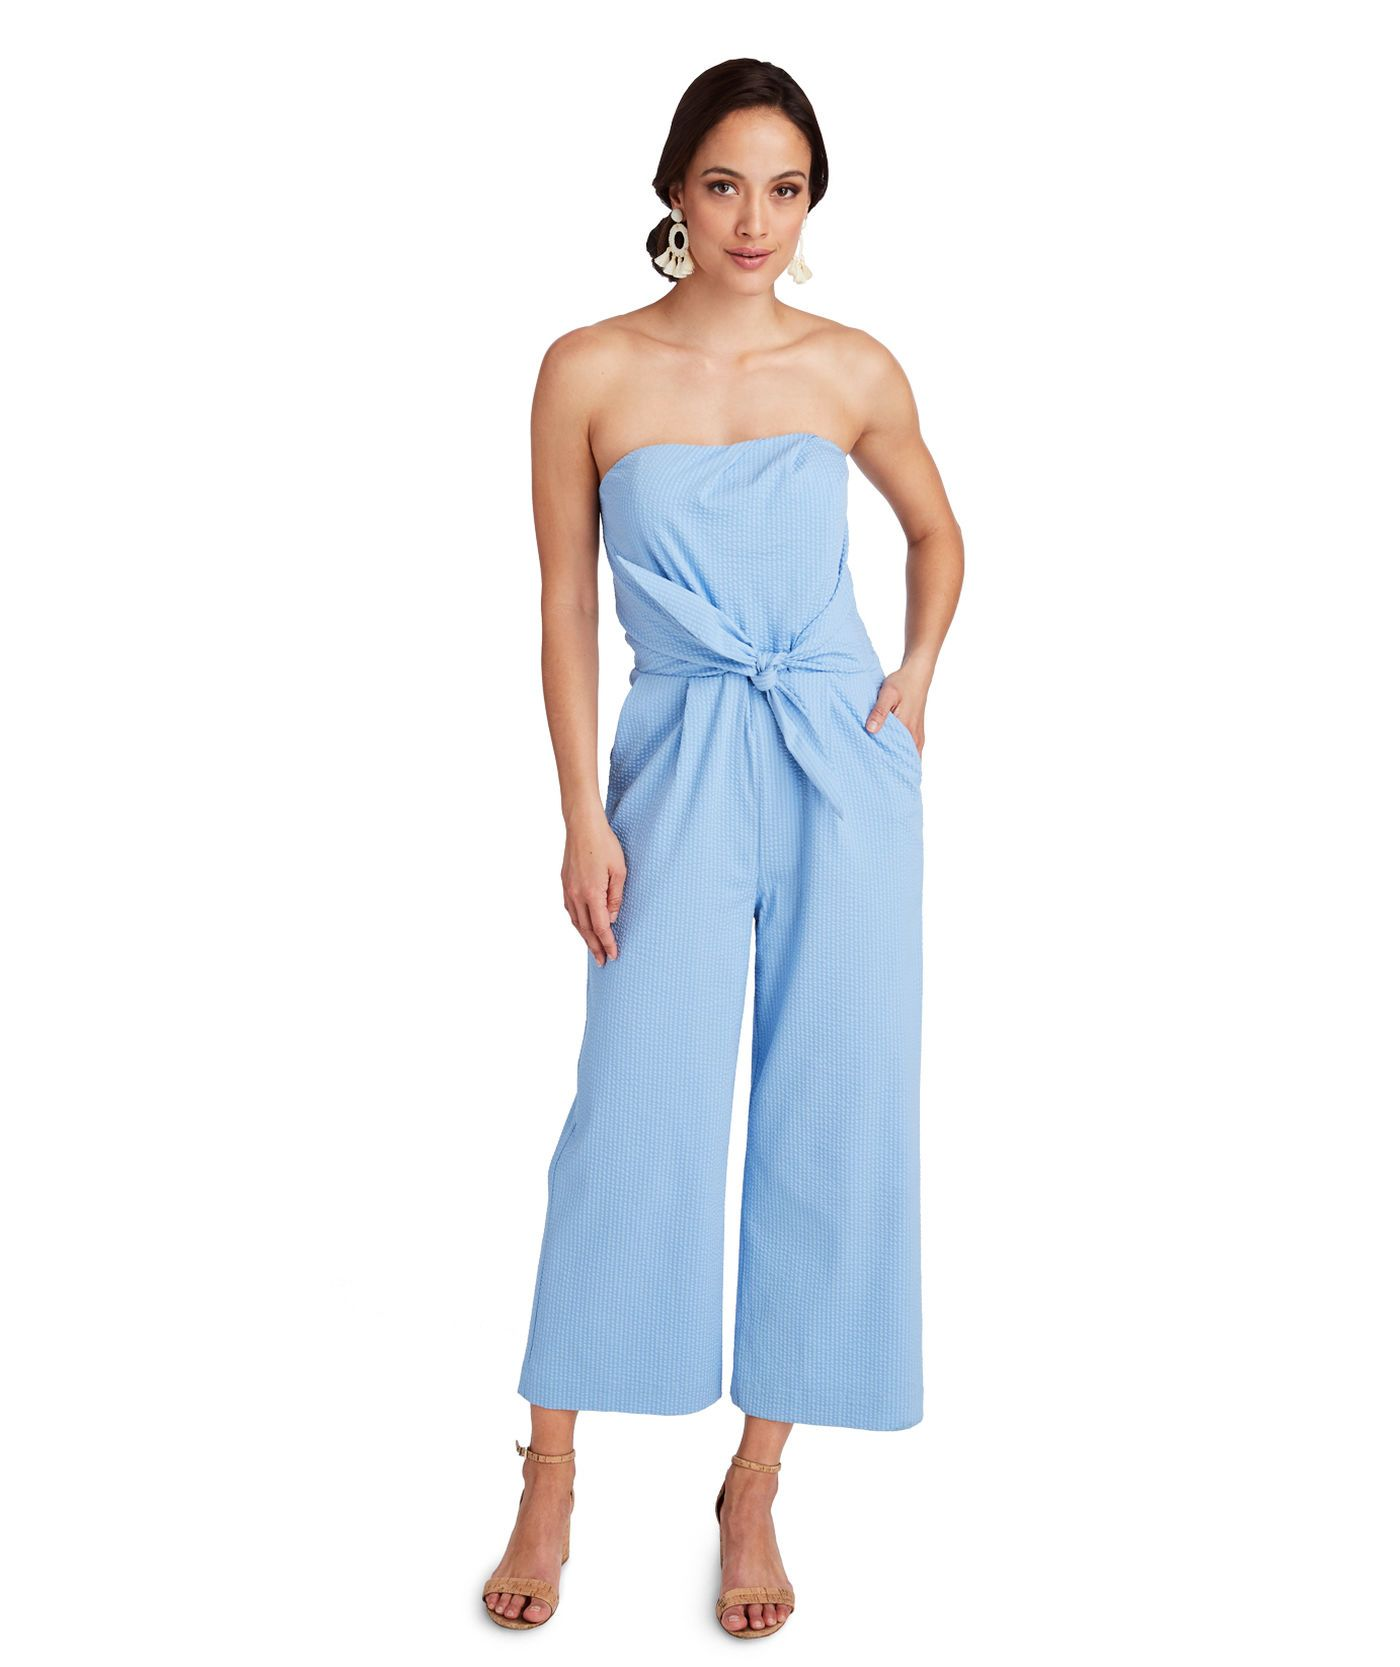 8b3bd0e17e Vineyard Vines Seersucker Jumpsuit in 2019